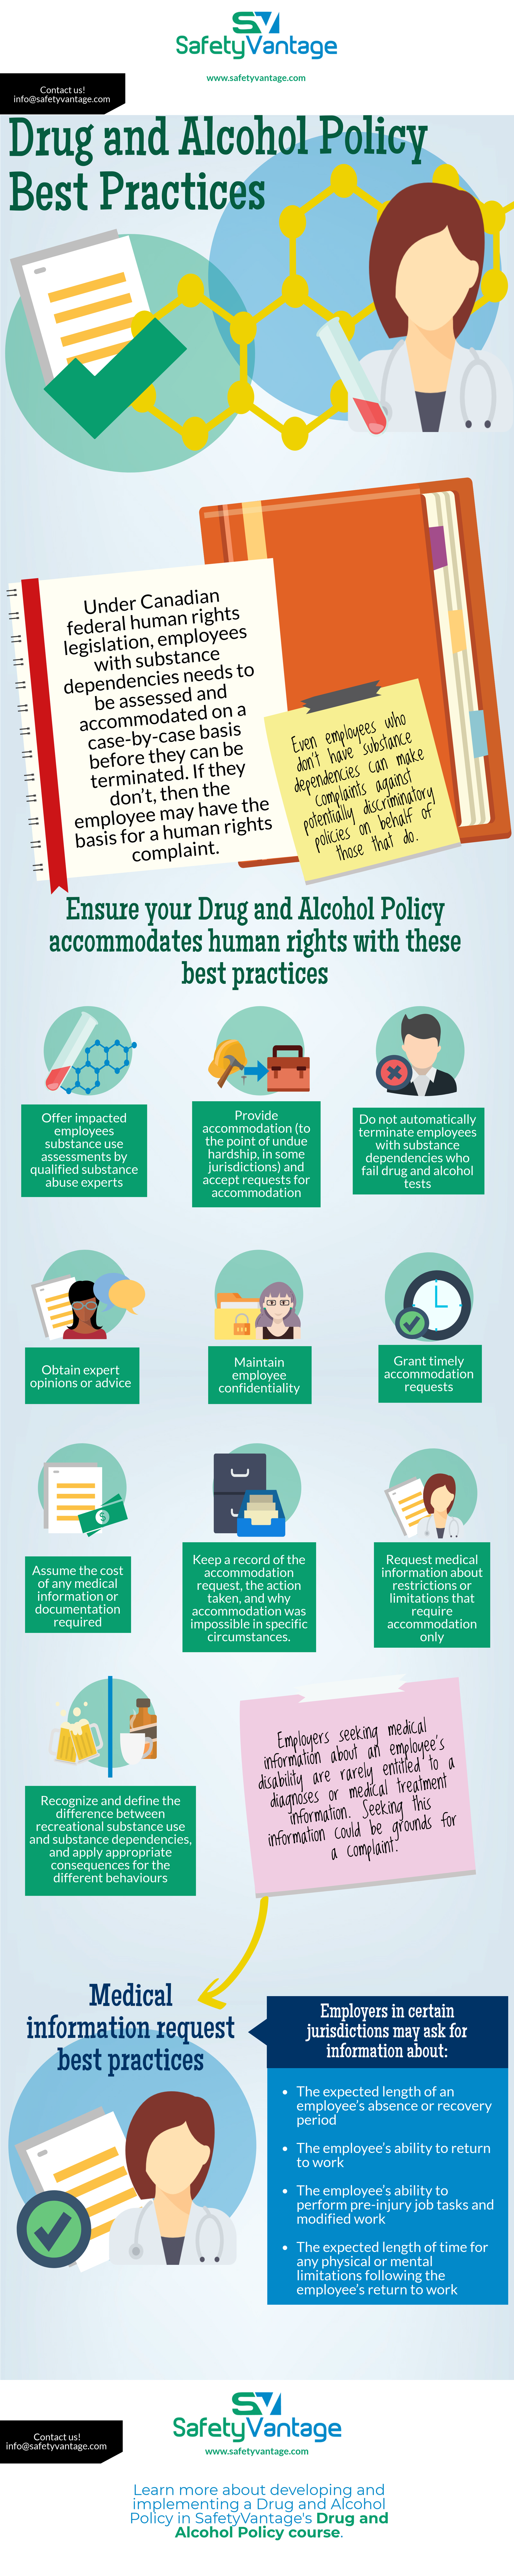 InfoGraphic - Ensure your Drug and Alcohol Policy accommodates human rights with these best practices.